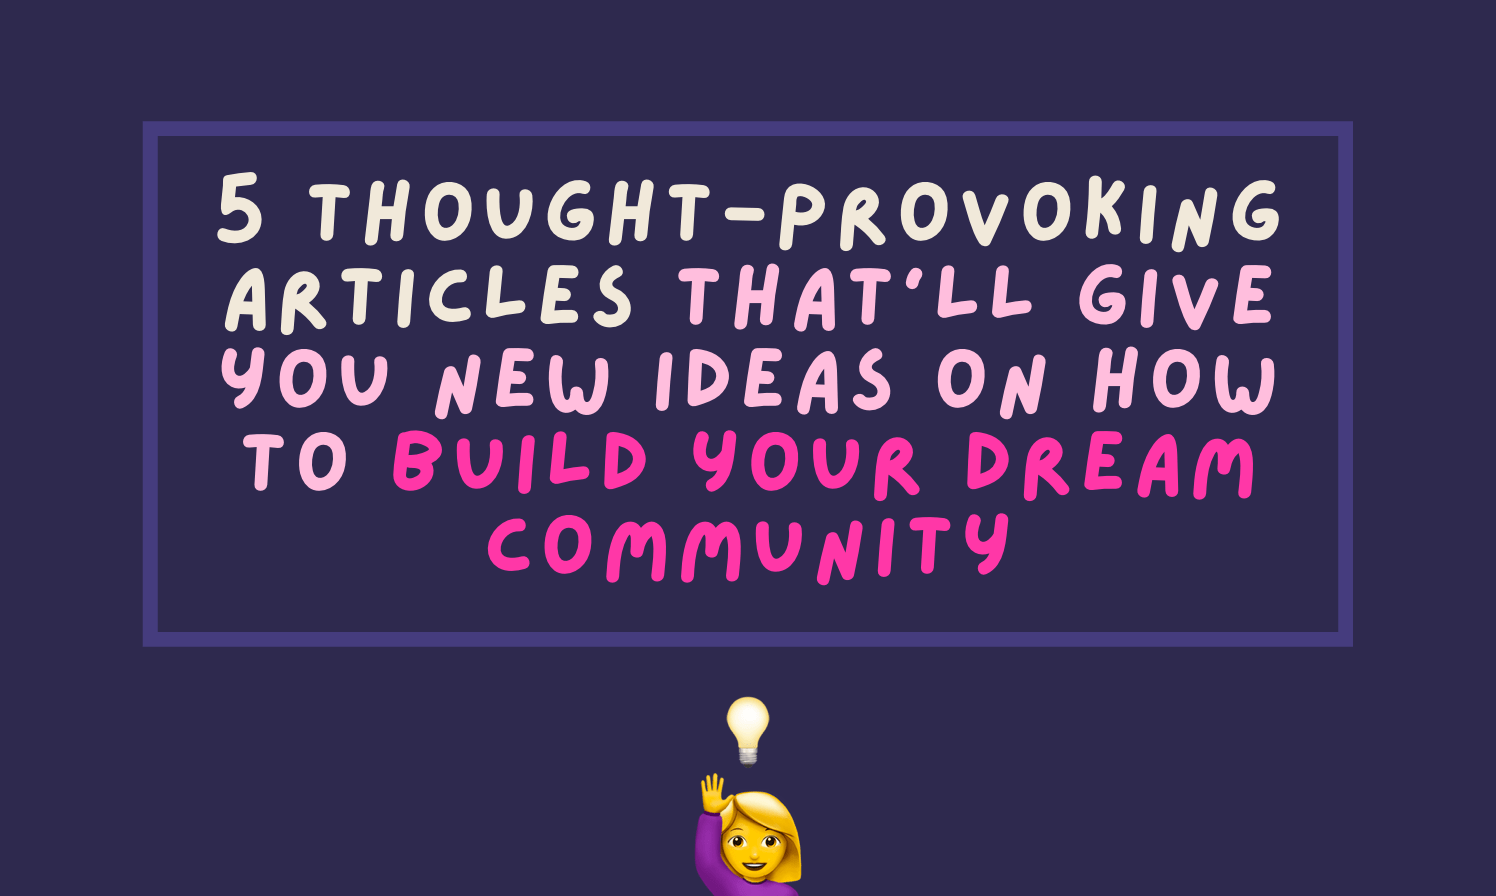 5 thought-provoking articles that'll teach you how to build community in your personal life.